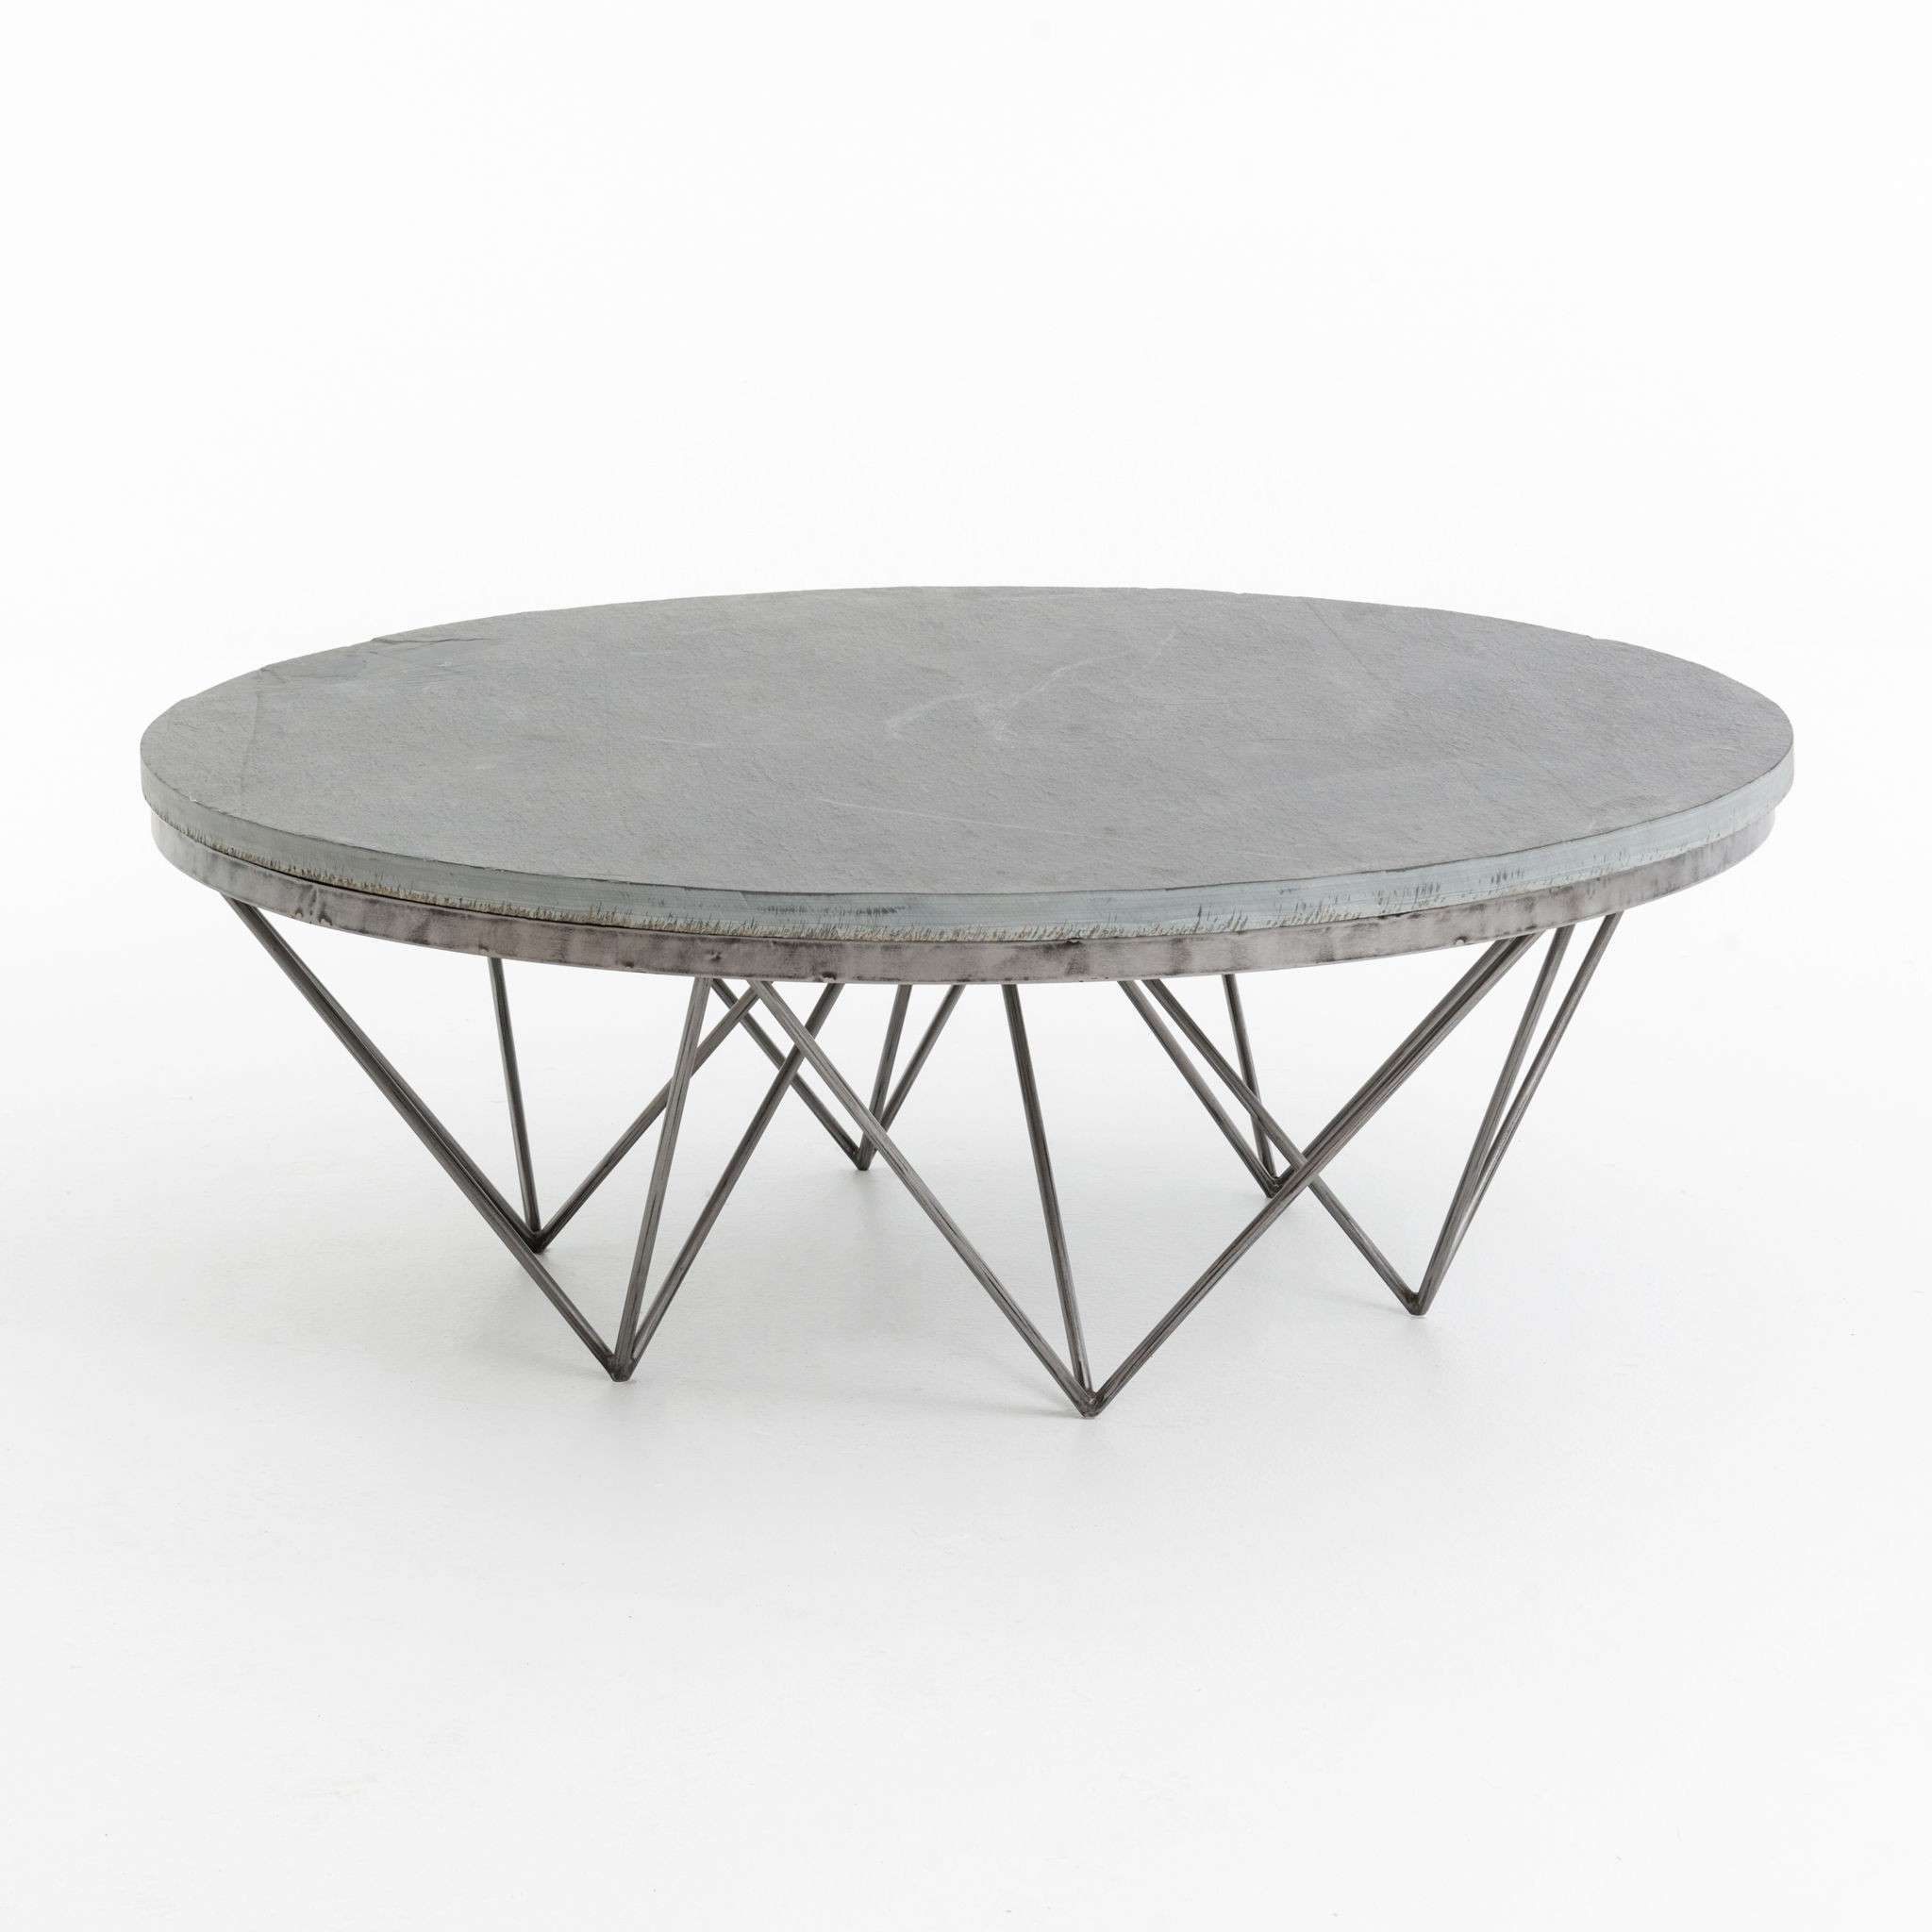 2018 Round Metal Coffee Tables Throughout Coffee Tables : Metal Frame Coffee Table Black Square Glass Living (View 1 of 20)